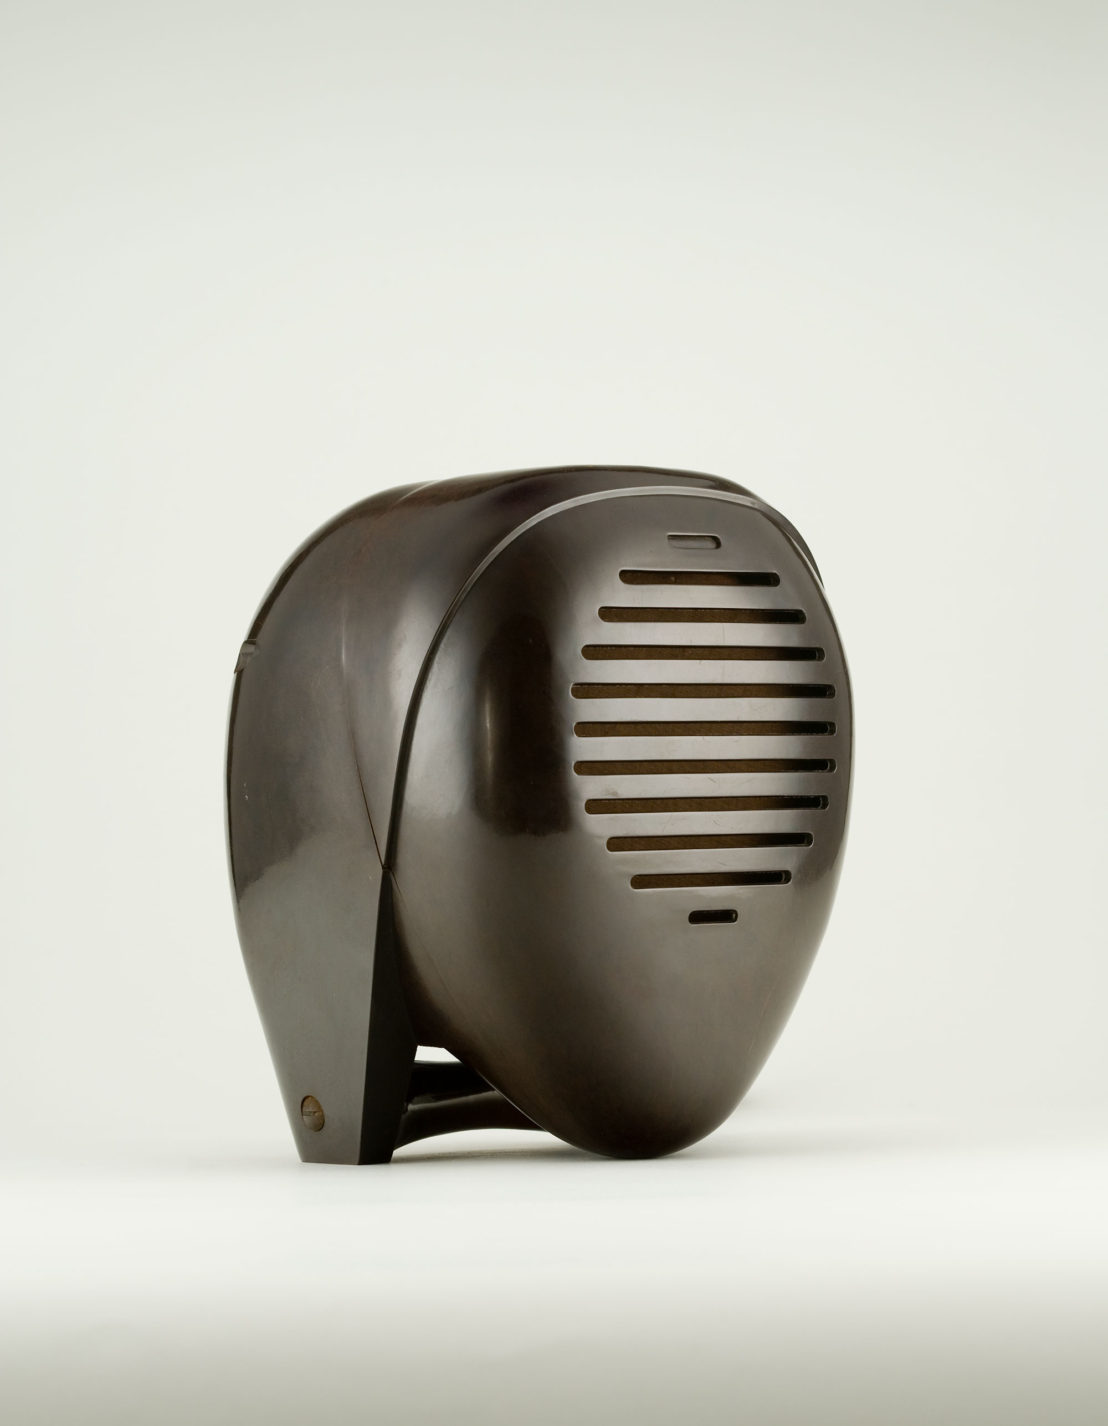 Radio receiver. Ovoid shaped speaker with a casing over the back, meant to look like an abstract head in an old-fashioned nurse's cap, and horizontal sound openings across the front.